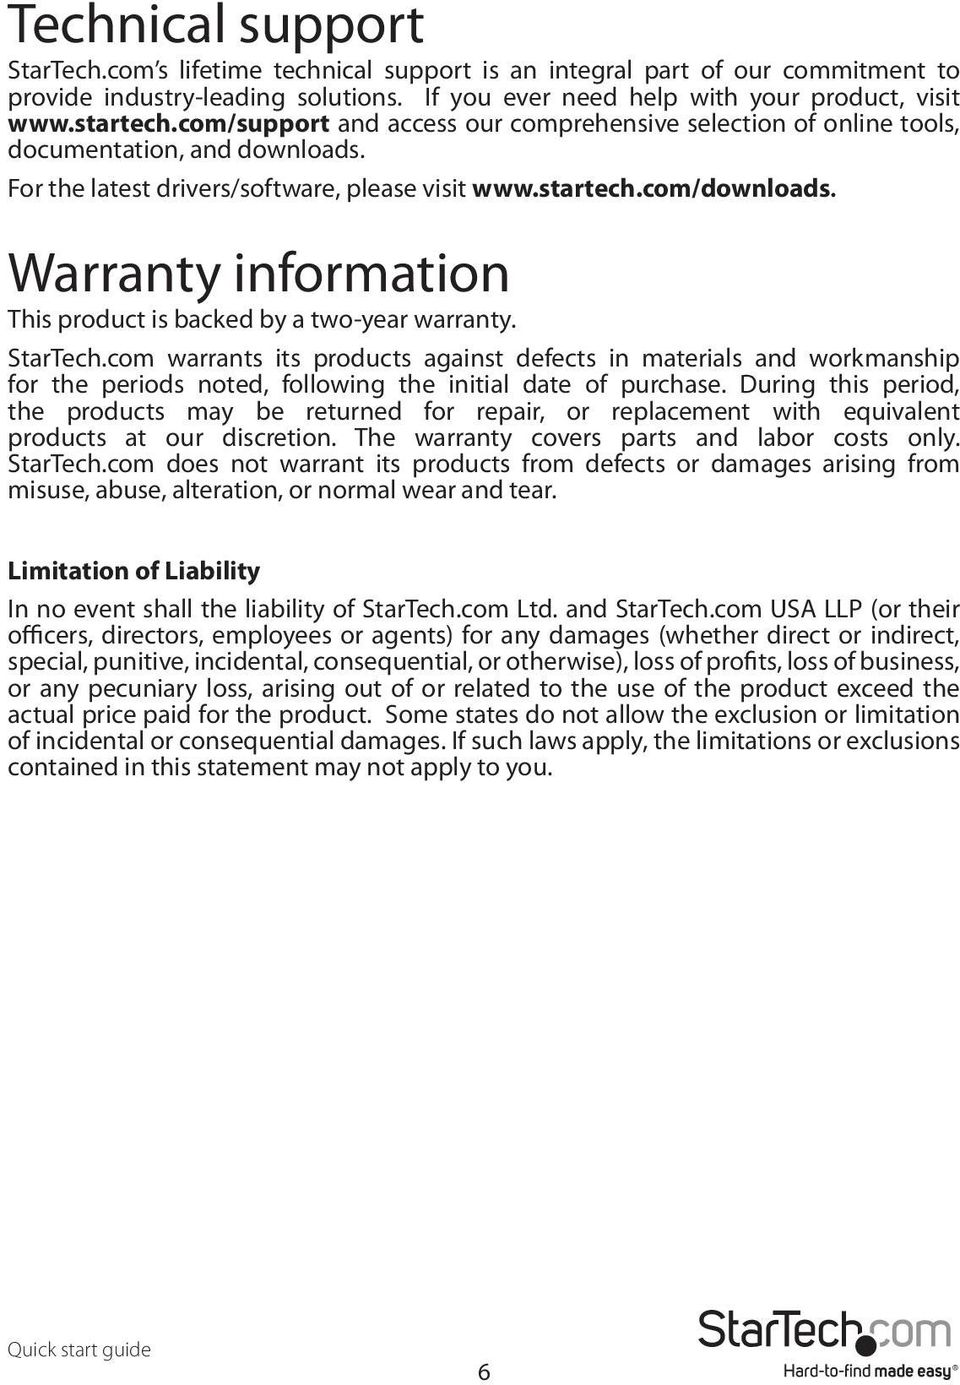 Warranty information This product is backed by a two-year warranty. StarTech.